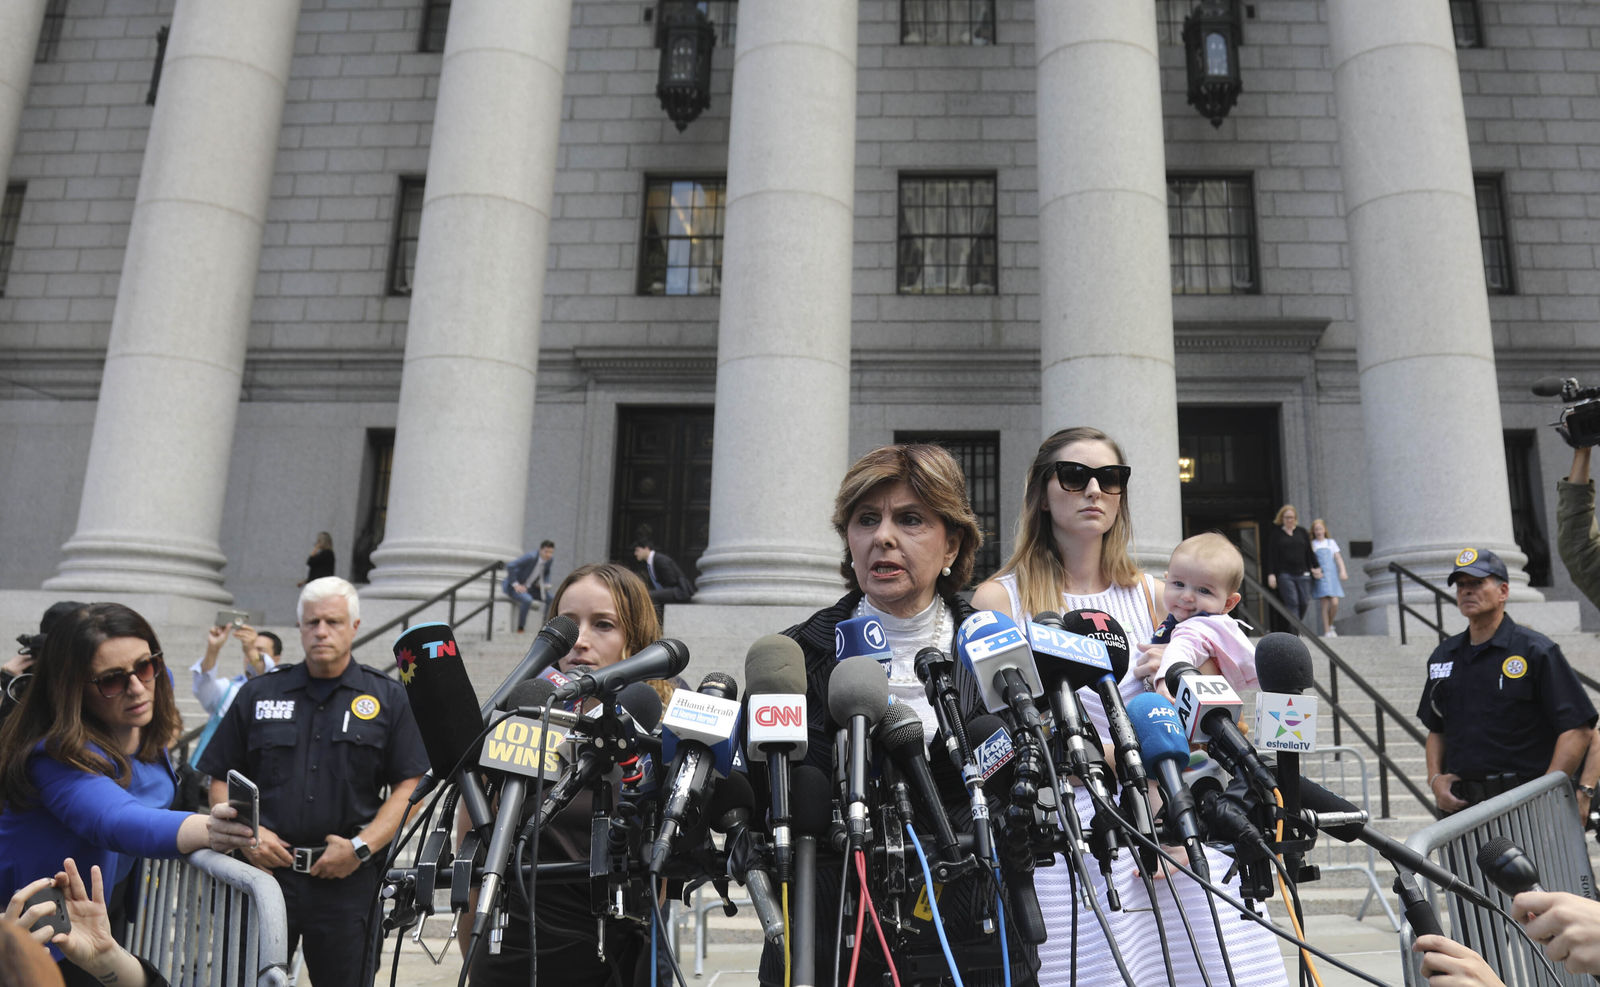 Attorney Gloria Allred, center, flanked by two of her clients, speak during a news conference after leaving a Manhattan court where sexual victims, on invitation of a judge, addressed a hearing after the accused Jeffrey Epstein killed himself before facing sex trafficking charges, Tuesday Aug. 27, 2019, in New York. (AP Photo/Bebeto Matthews)